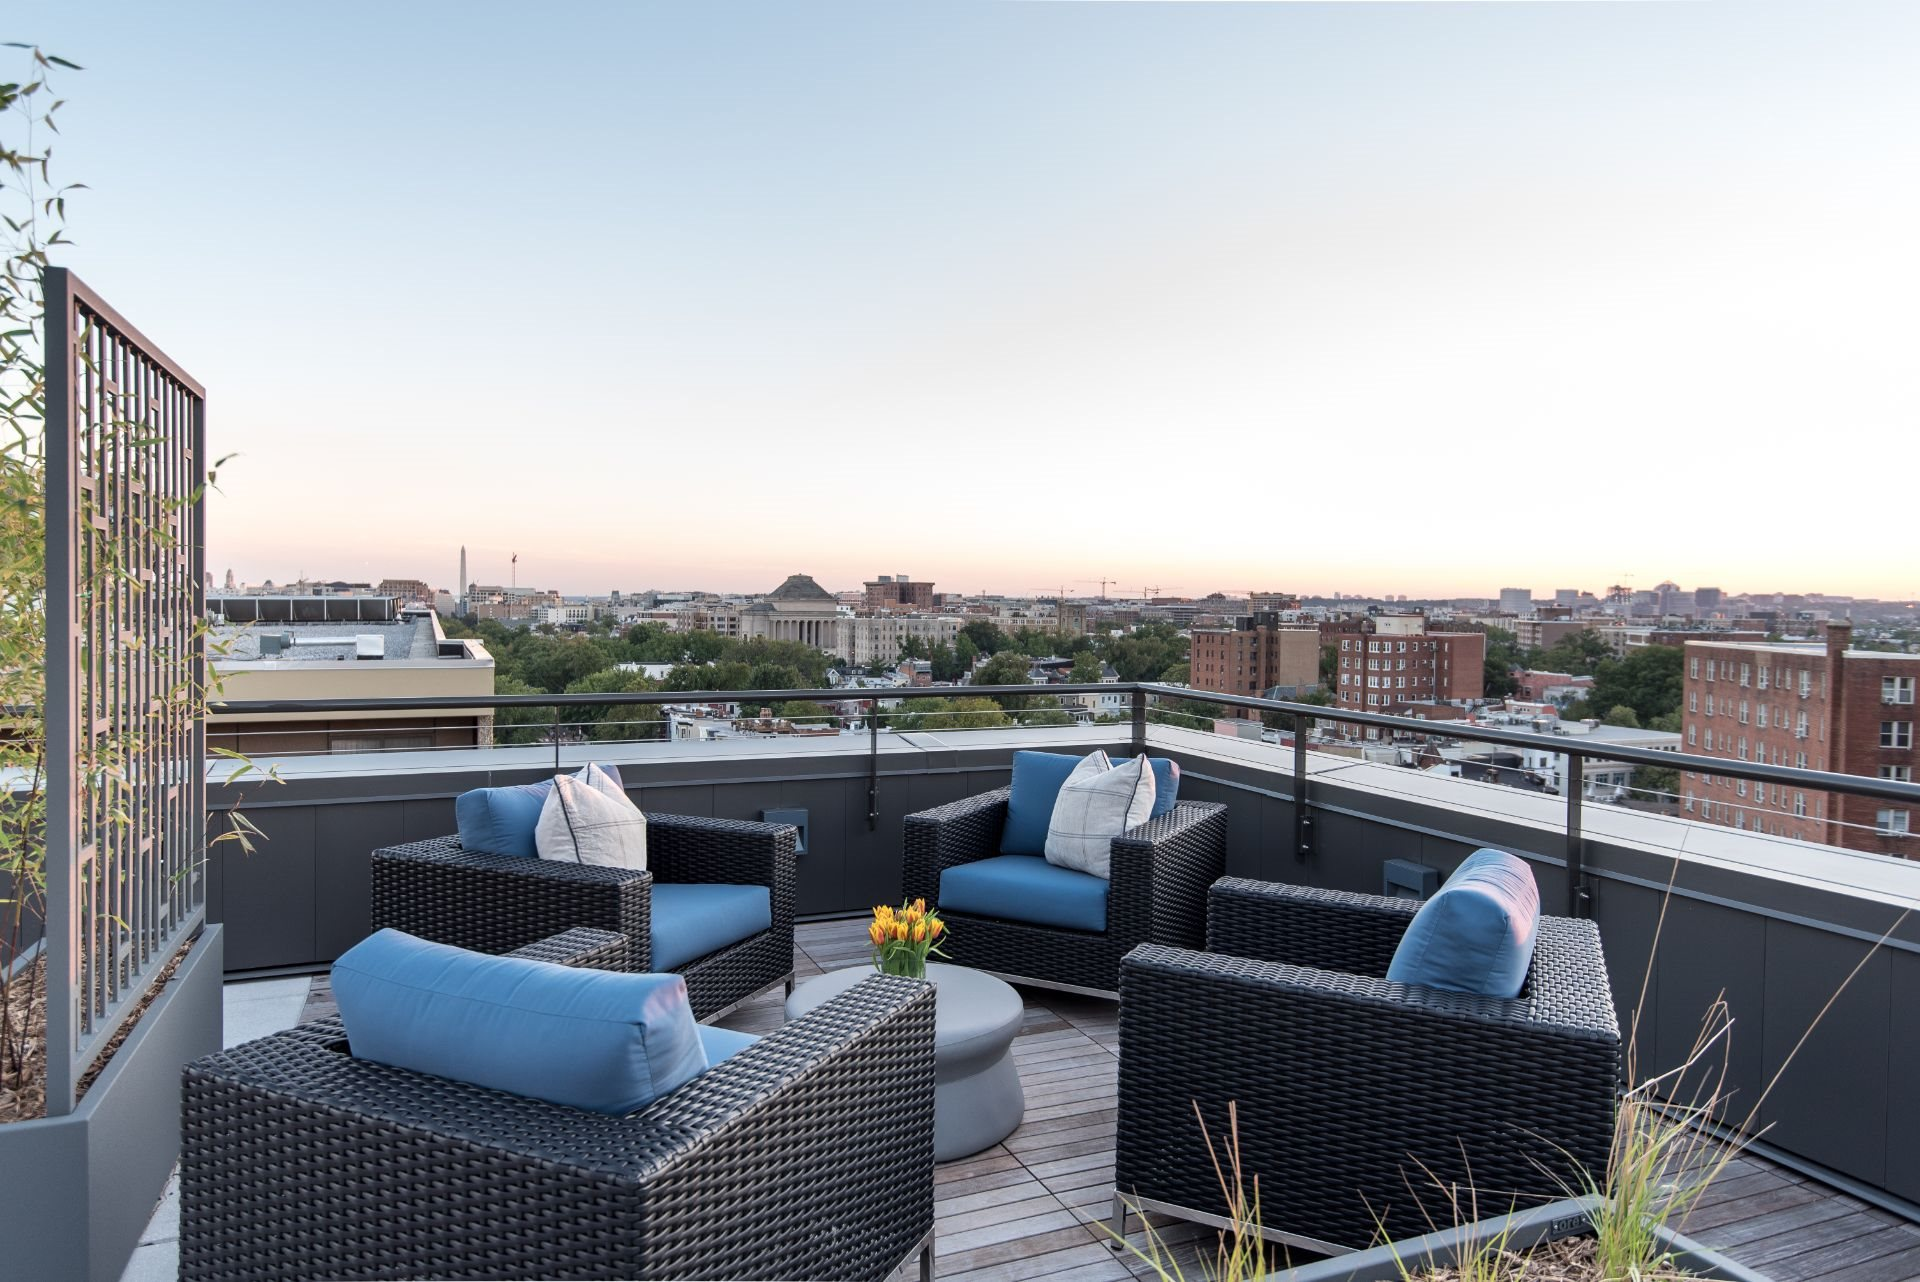 Berkshire 15 Apartments Roof Deck with Outdoor Living Room with Firepit  and DC City Views  2011 15th Street N.W. Washington, D.C. 20009, New Apartments U Street DC